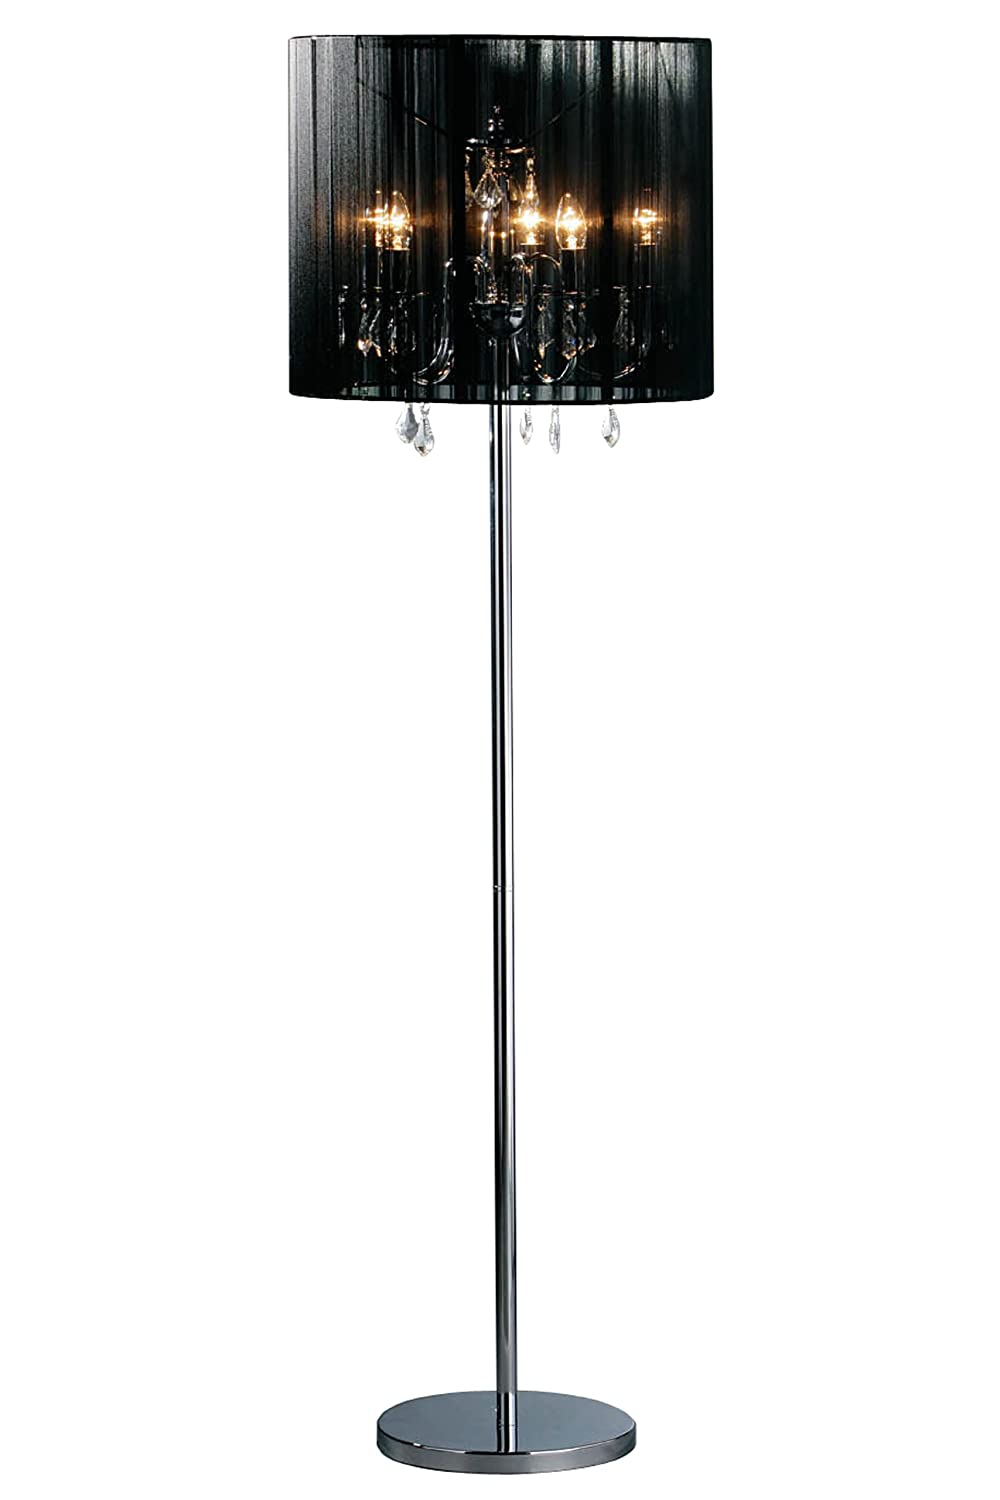 Premier housewares chandelier floor lamp with fabric shade black premier housewares chandelier floor lamp with fabric shade black amazon lighting aloadofball Choice Image